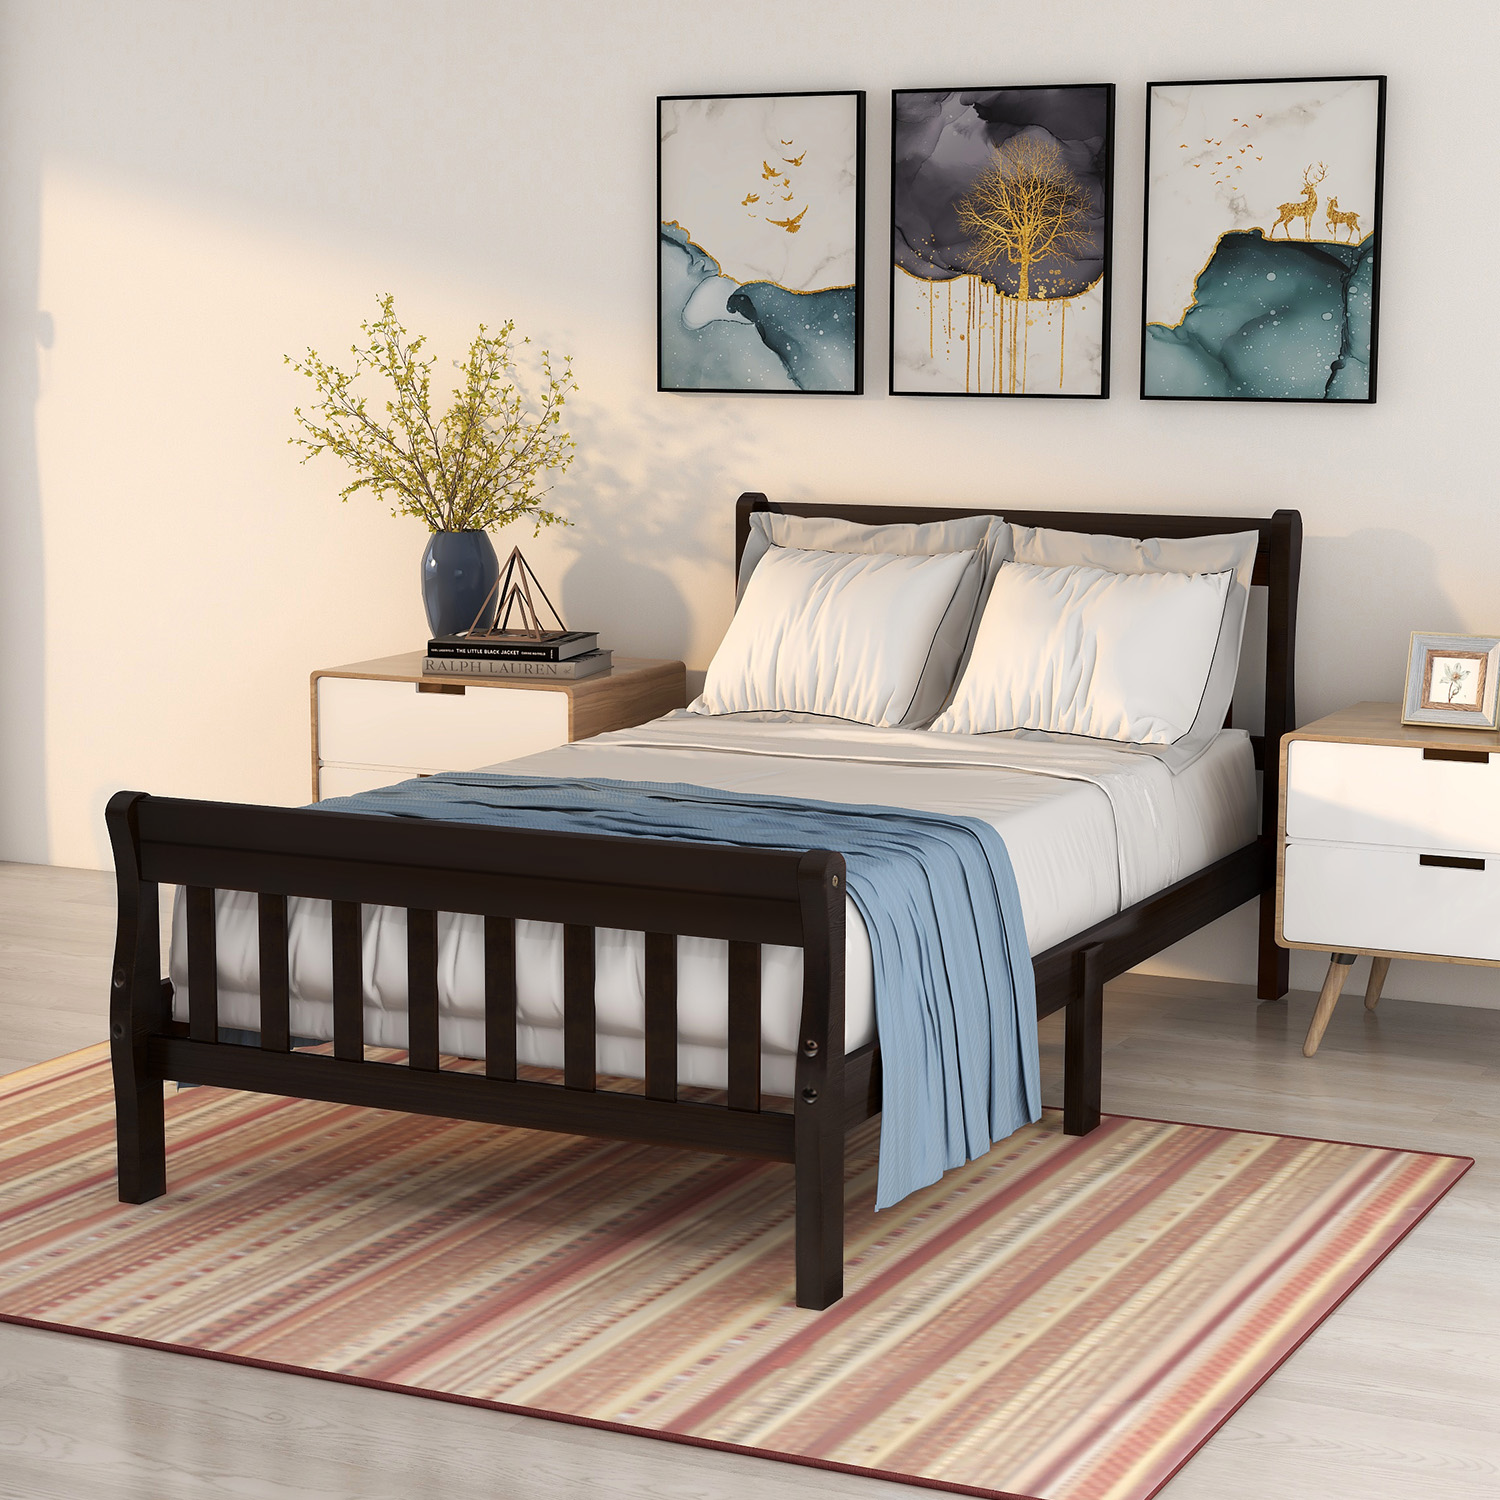 clearance twin platform bed frame wooden twin bed frame on walmart bedroom furniture clearance id=49057